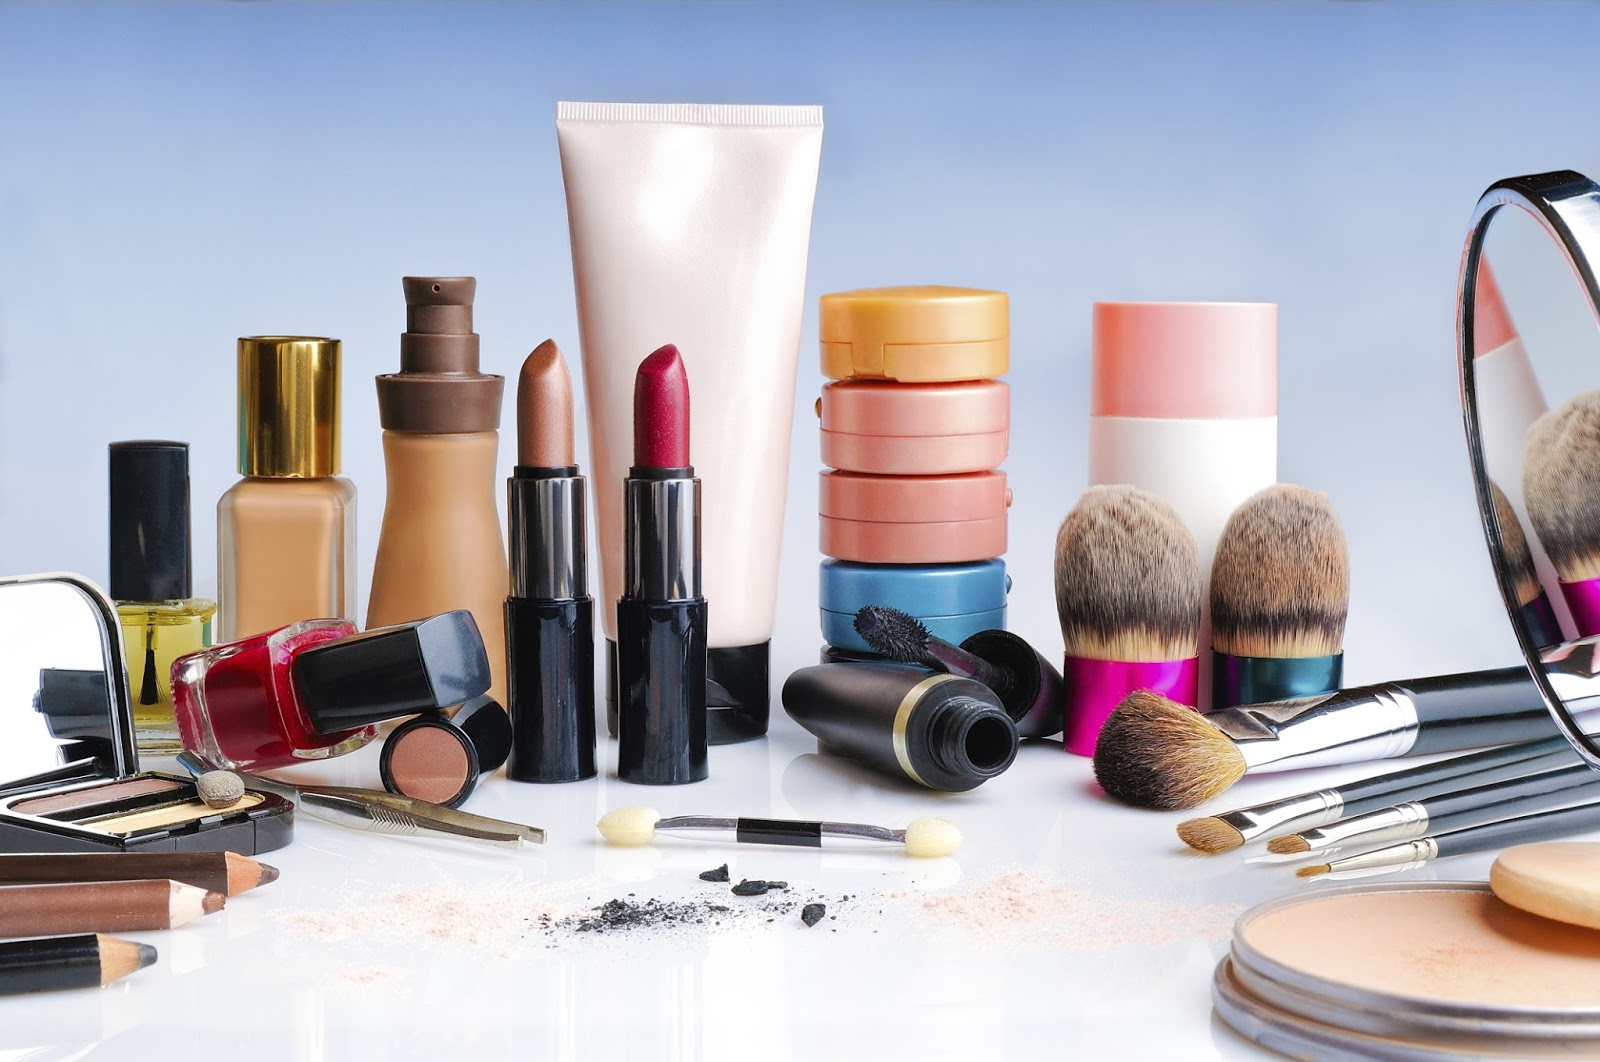 Top 5 Cosmetics Companies in the World 2020